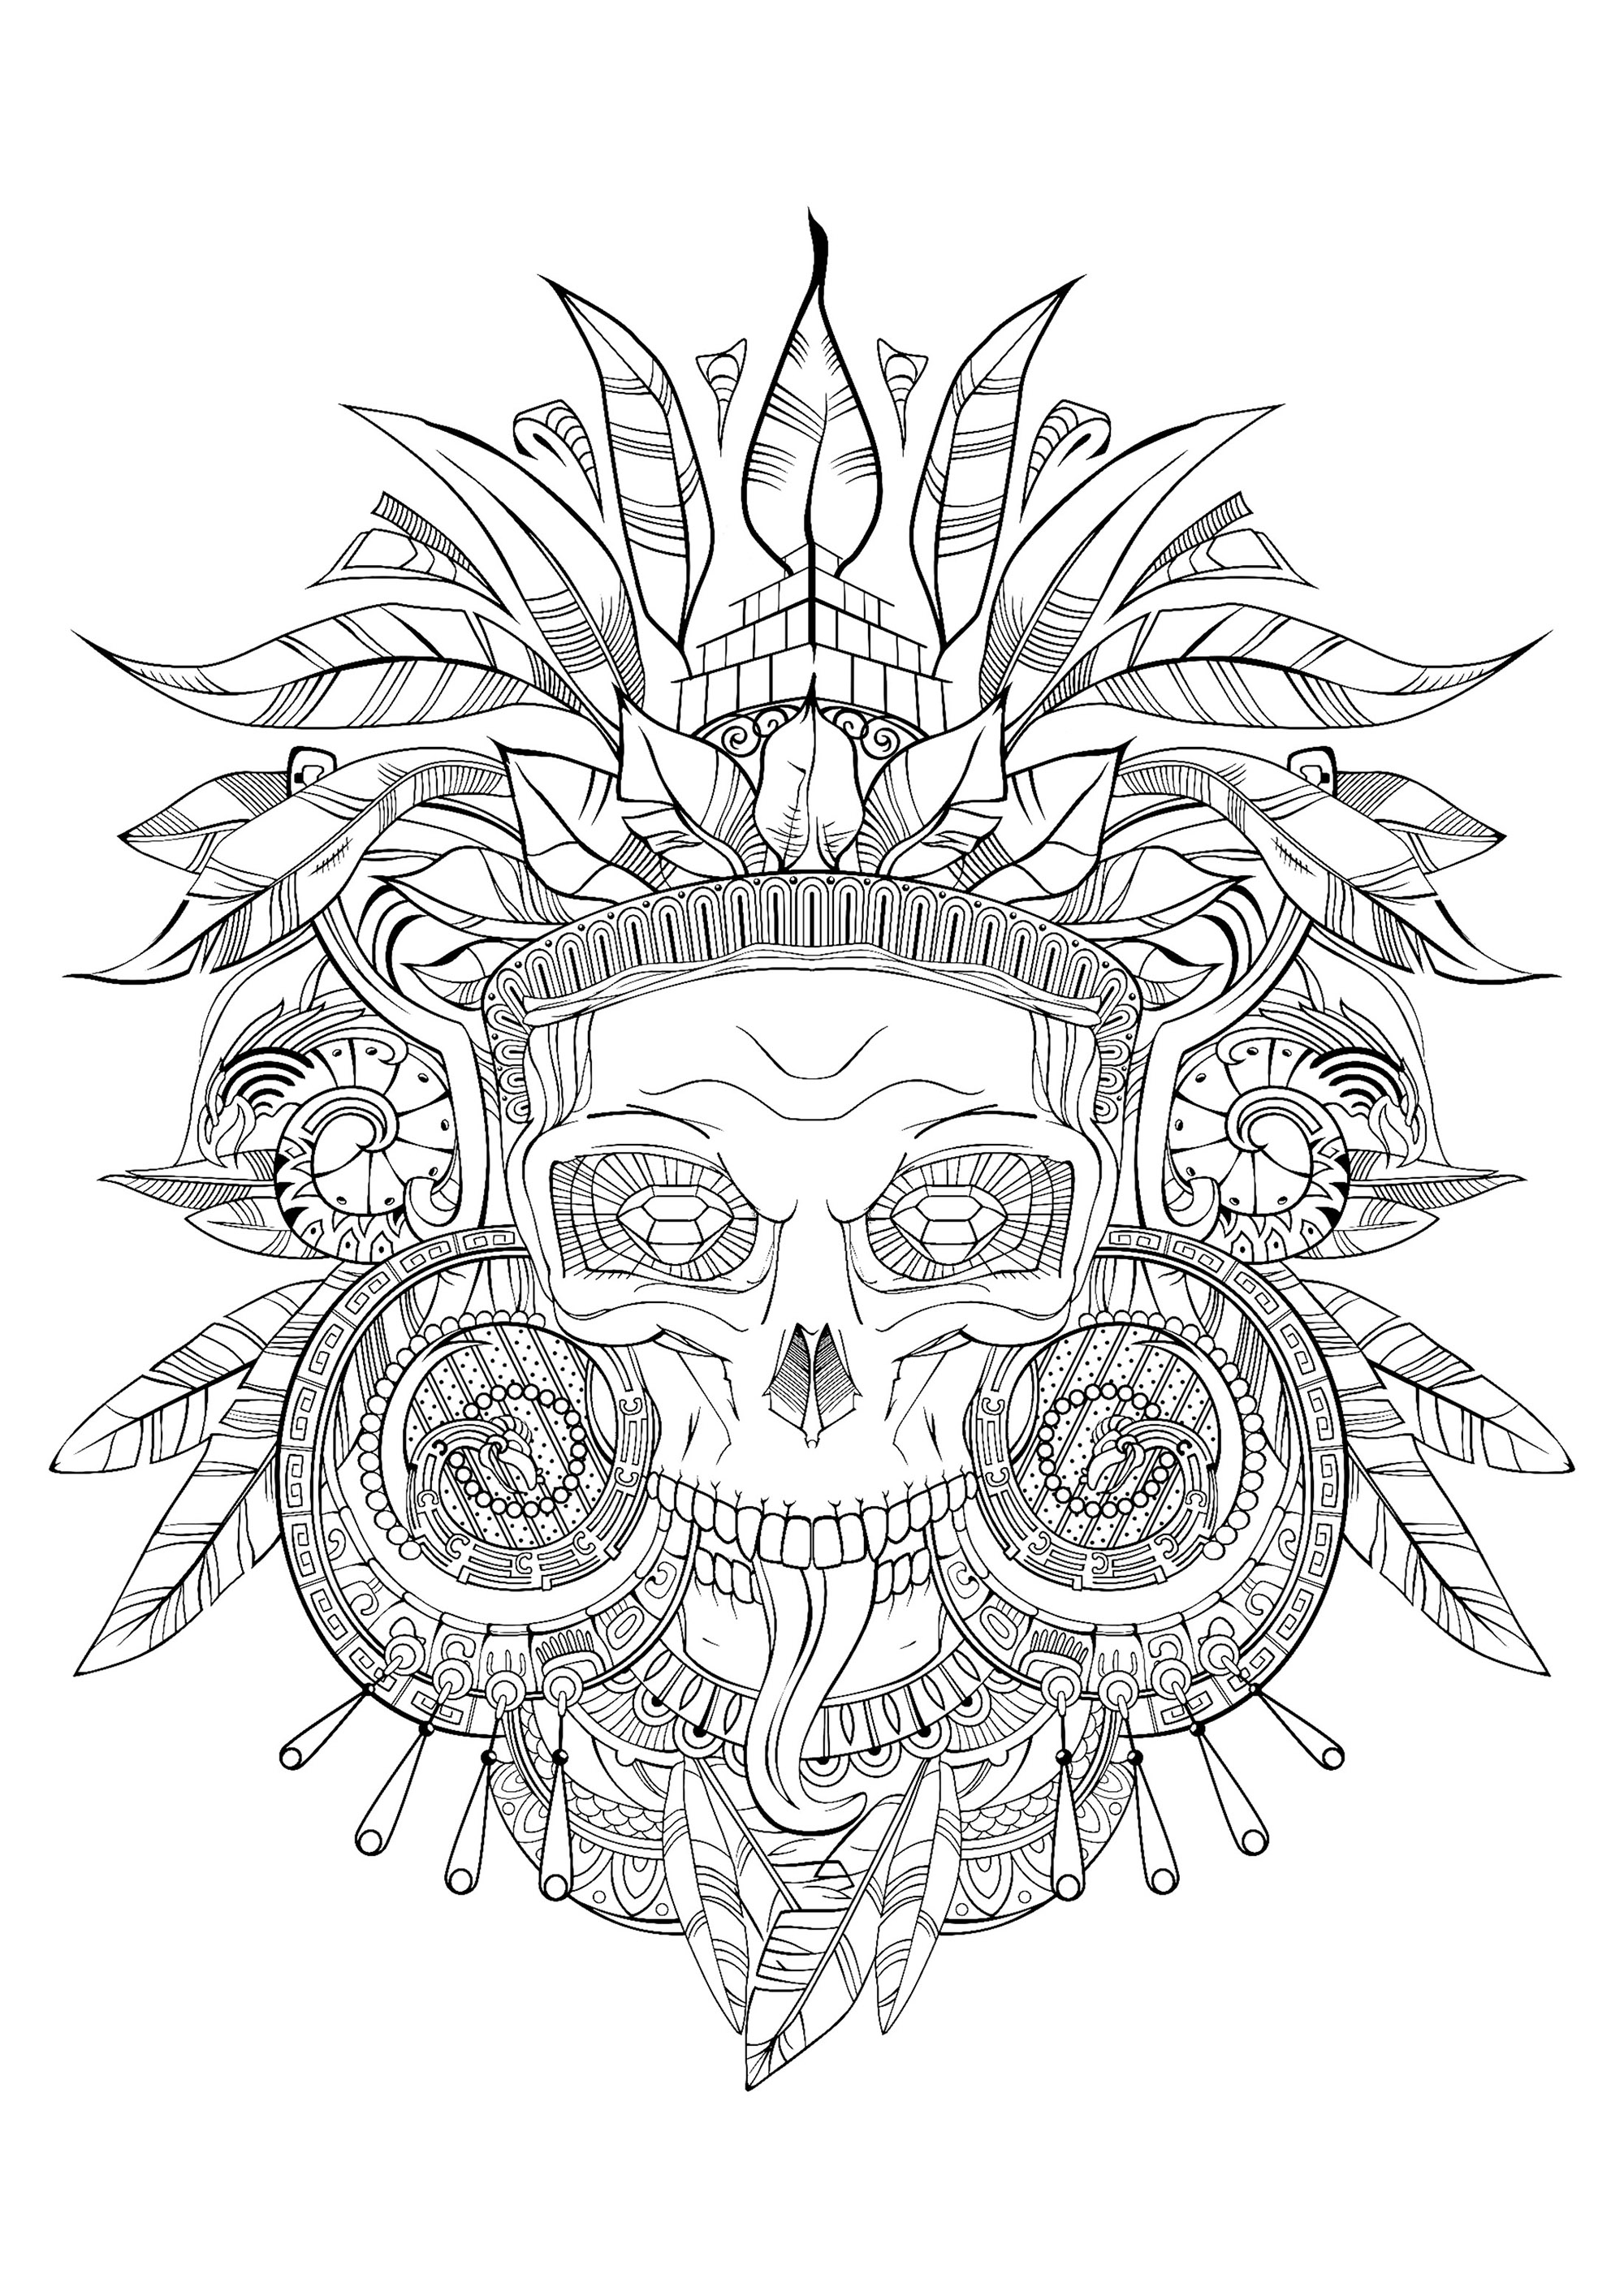 Coloring aztec skull black white